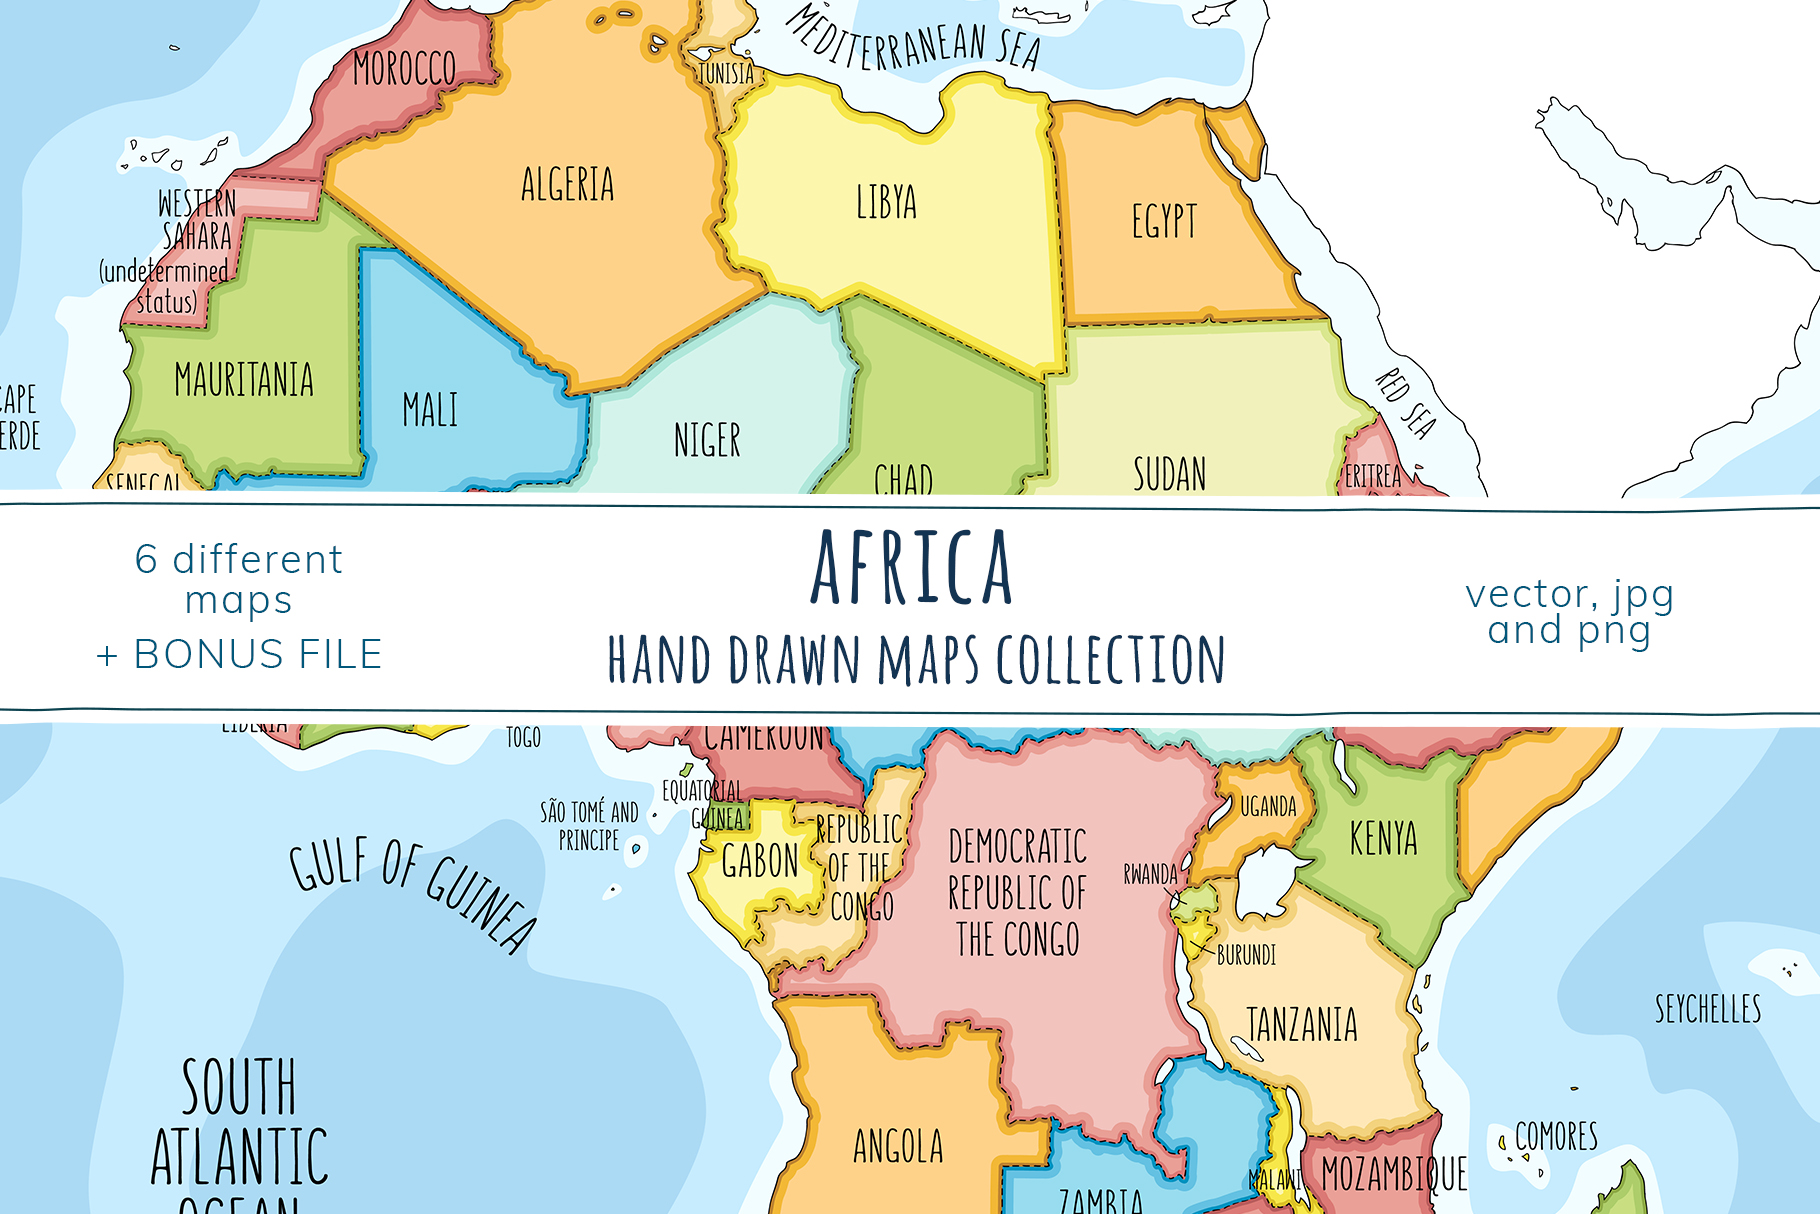 Maps of Africa. Hand drawn collection example image 1